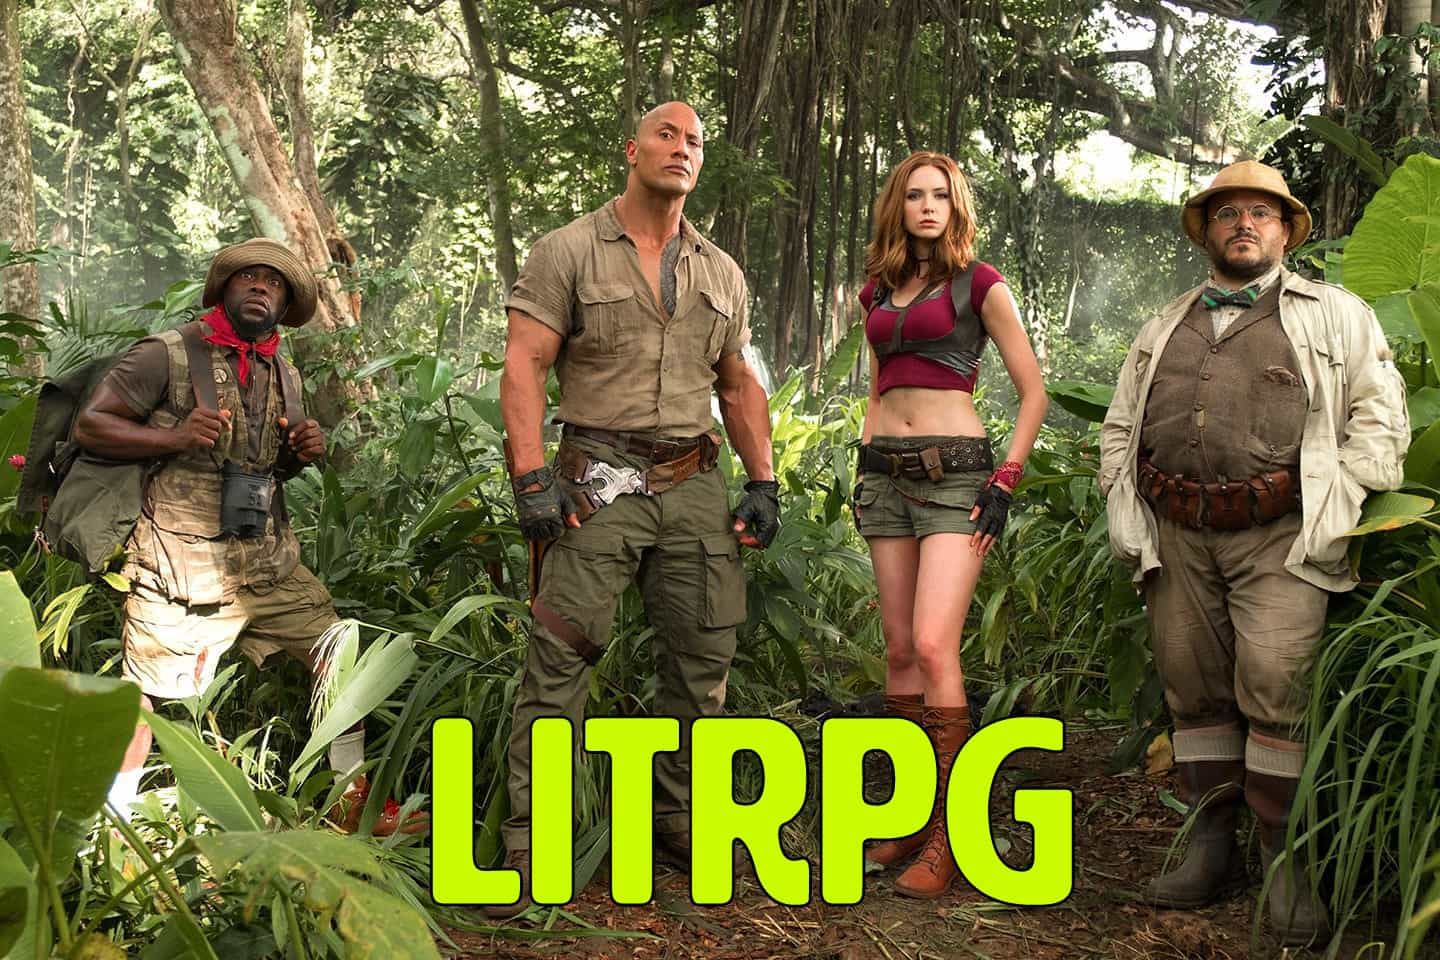 What is litrpg